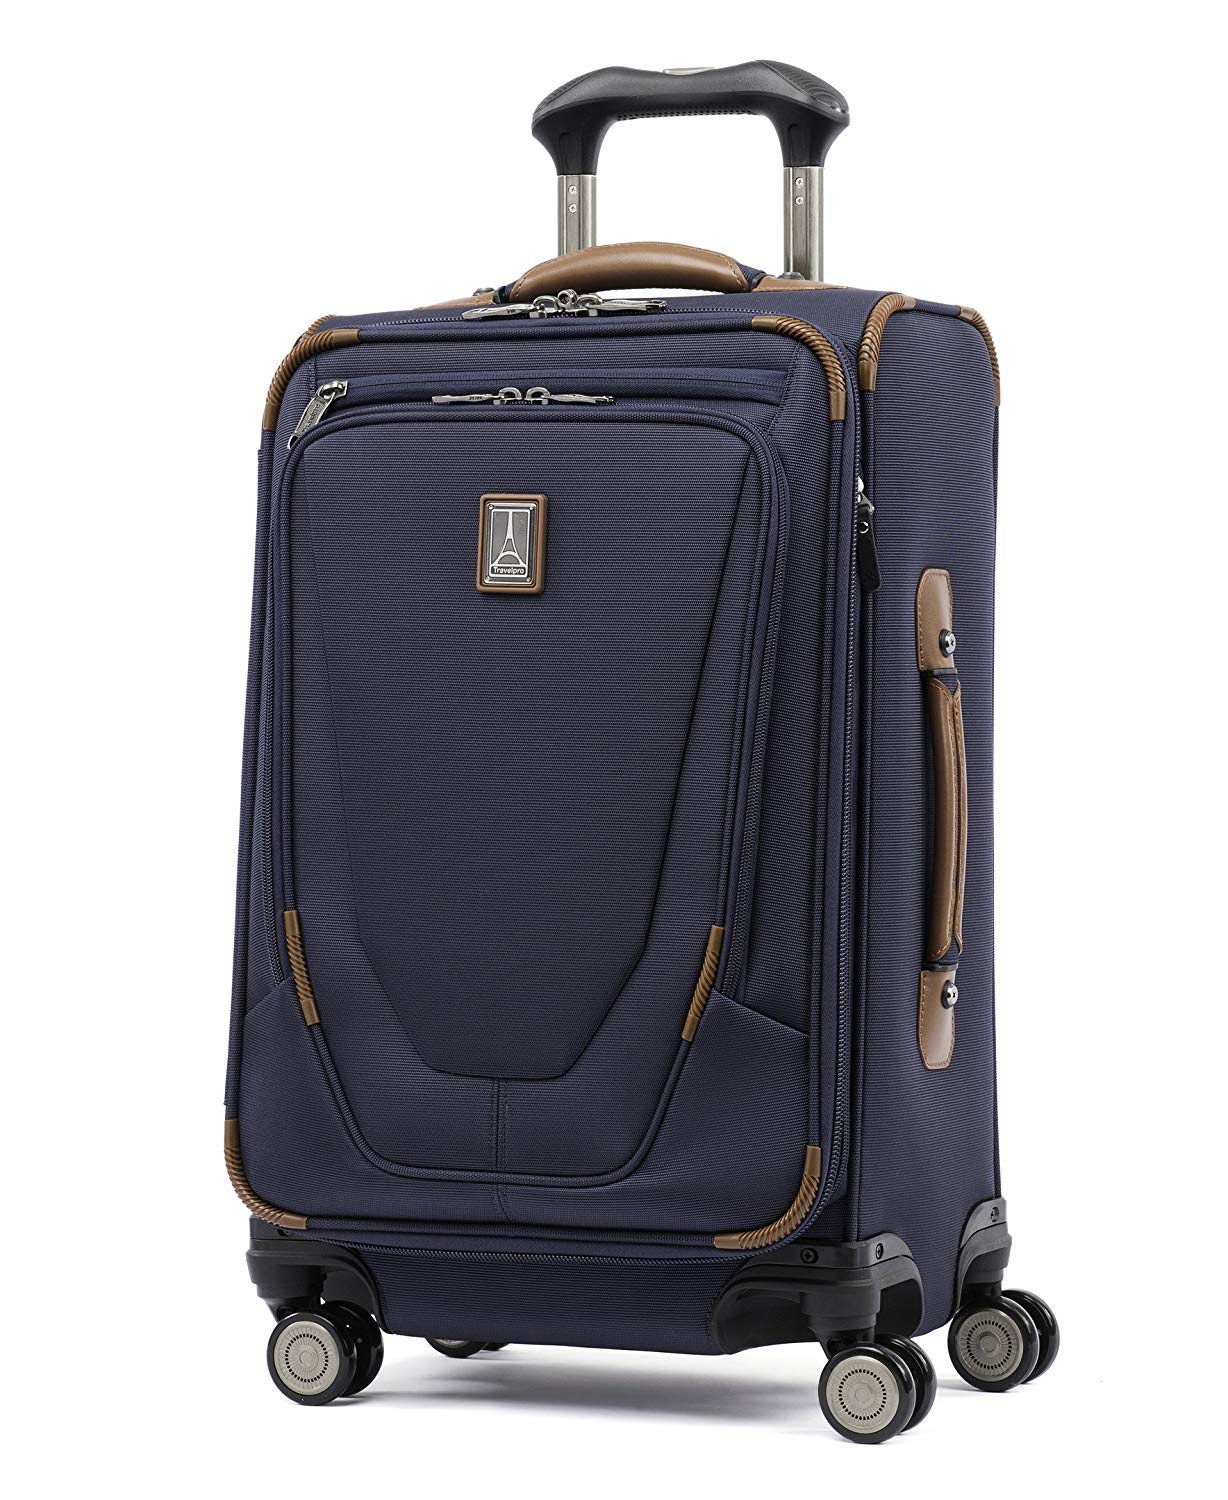 Travelpro Luggage Crew 11 21 Carry-on Expandable Spinner wSuiter and USB Port